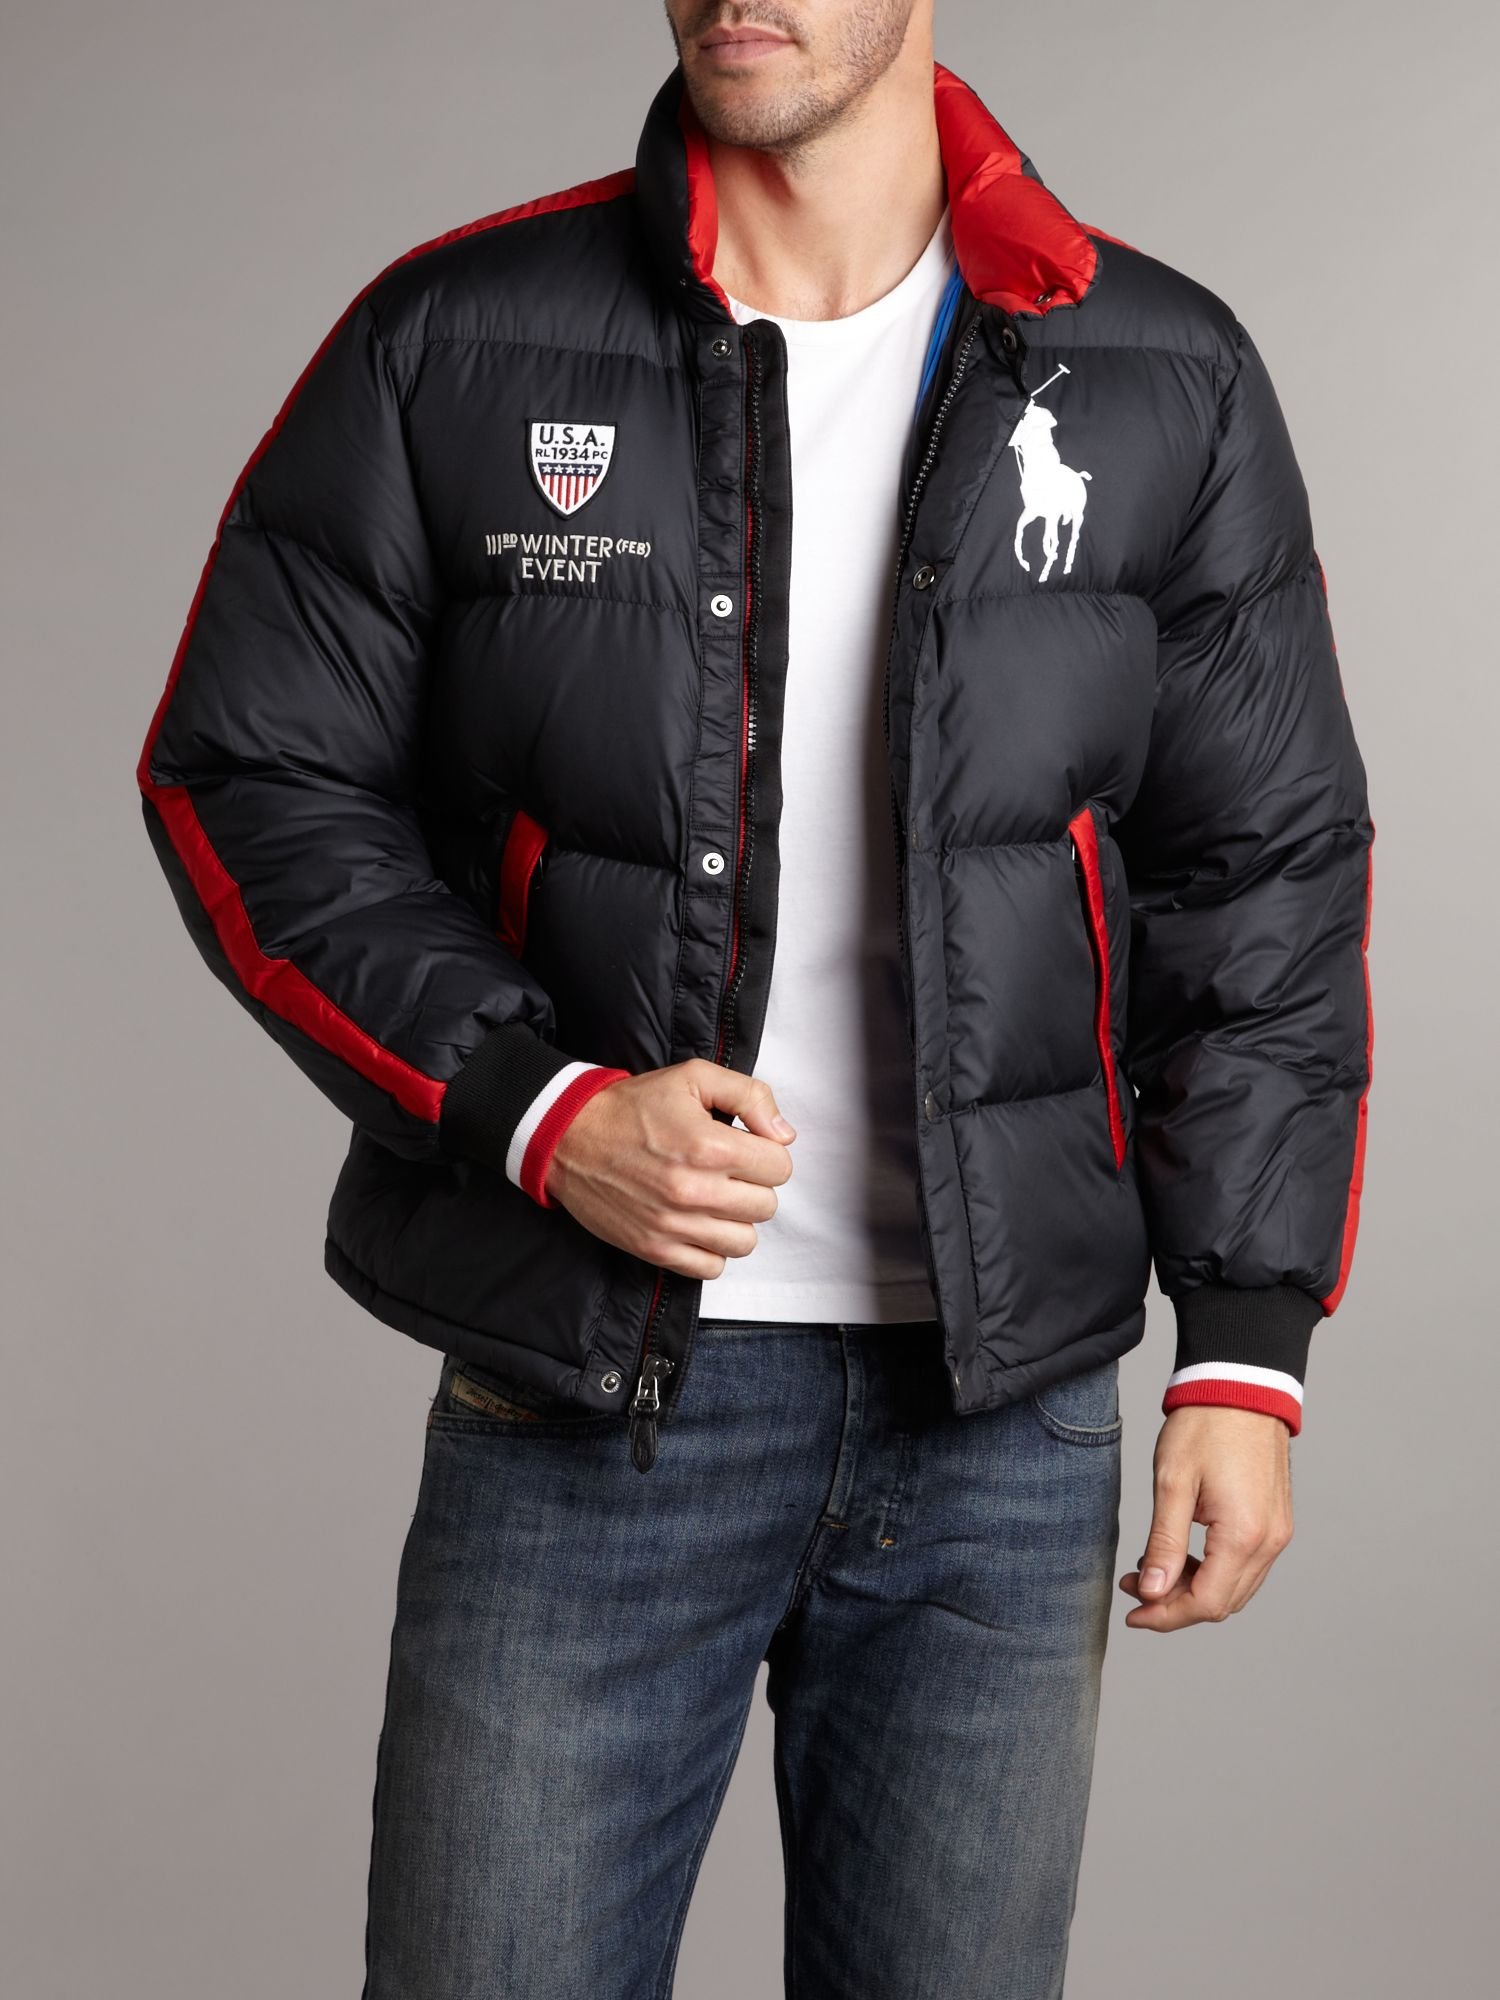 polo ralph lauren usa puffa jacket in black for men lyst. Black Bedroom Furniture Sets. Home Design Ideas